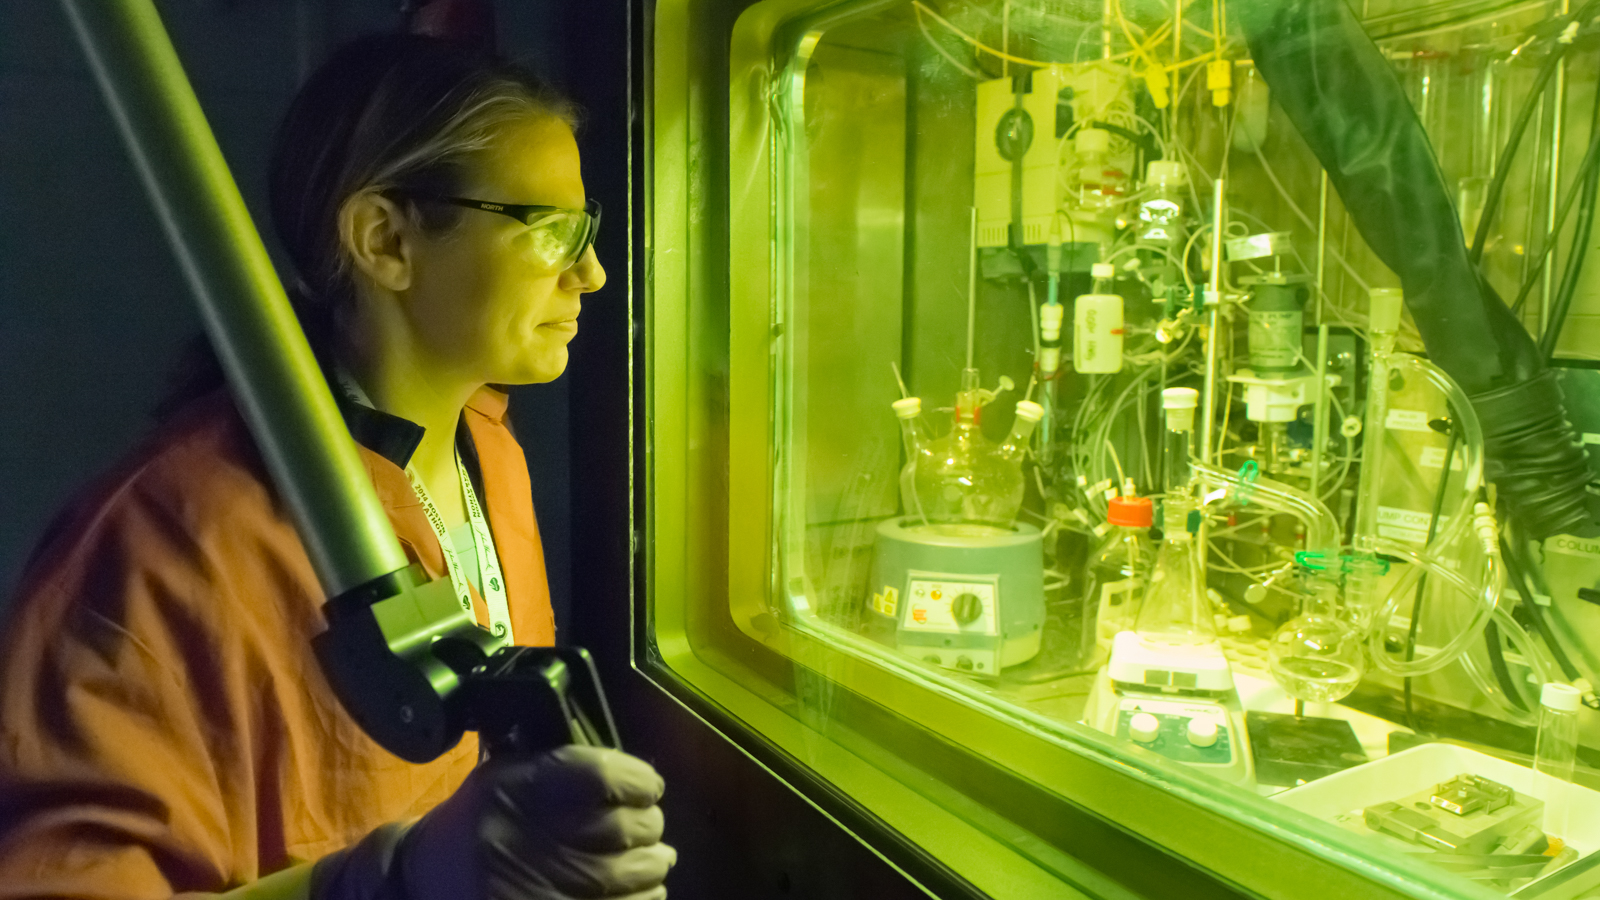 Argonne chemist Amanda Youker uses a remote manipulator arm to process and purify radioisotopes in a radiation cell.